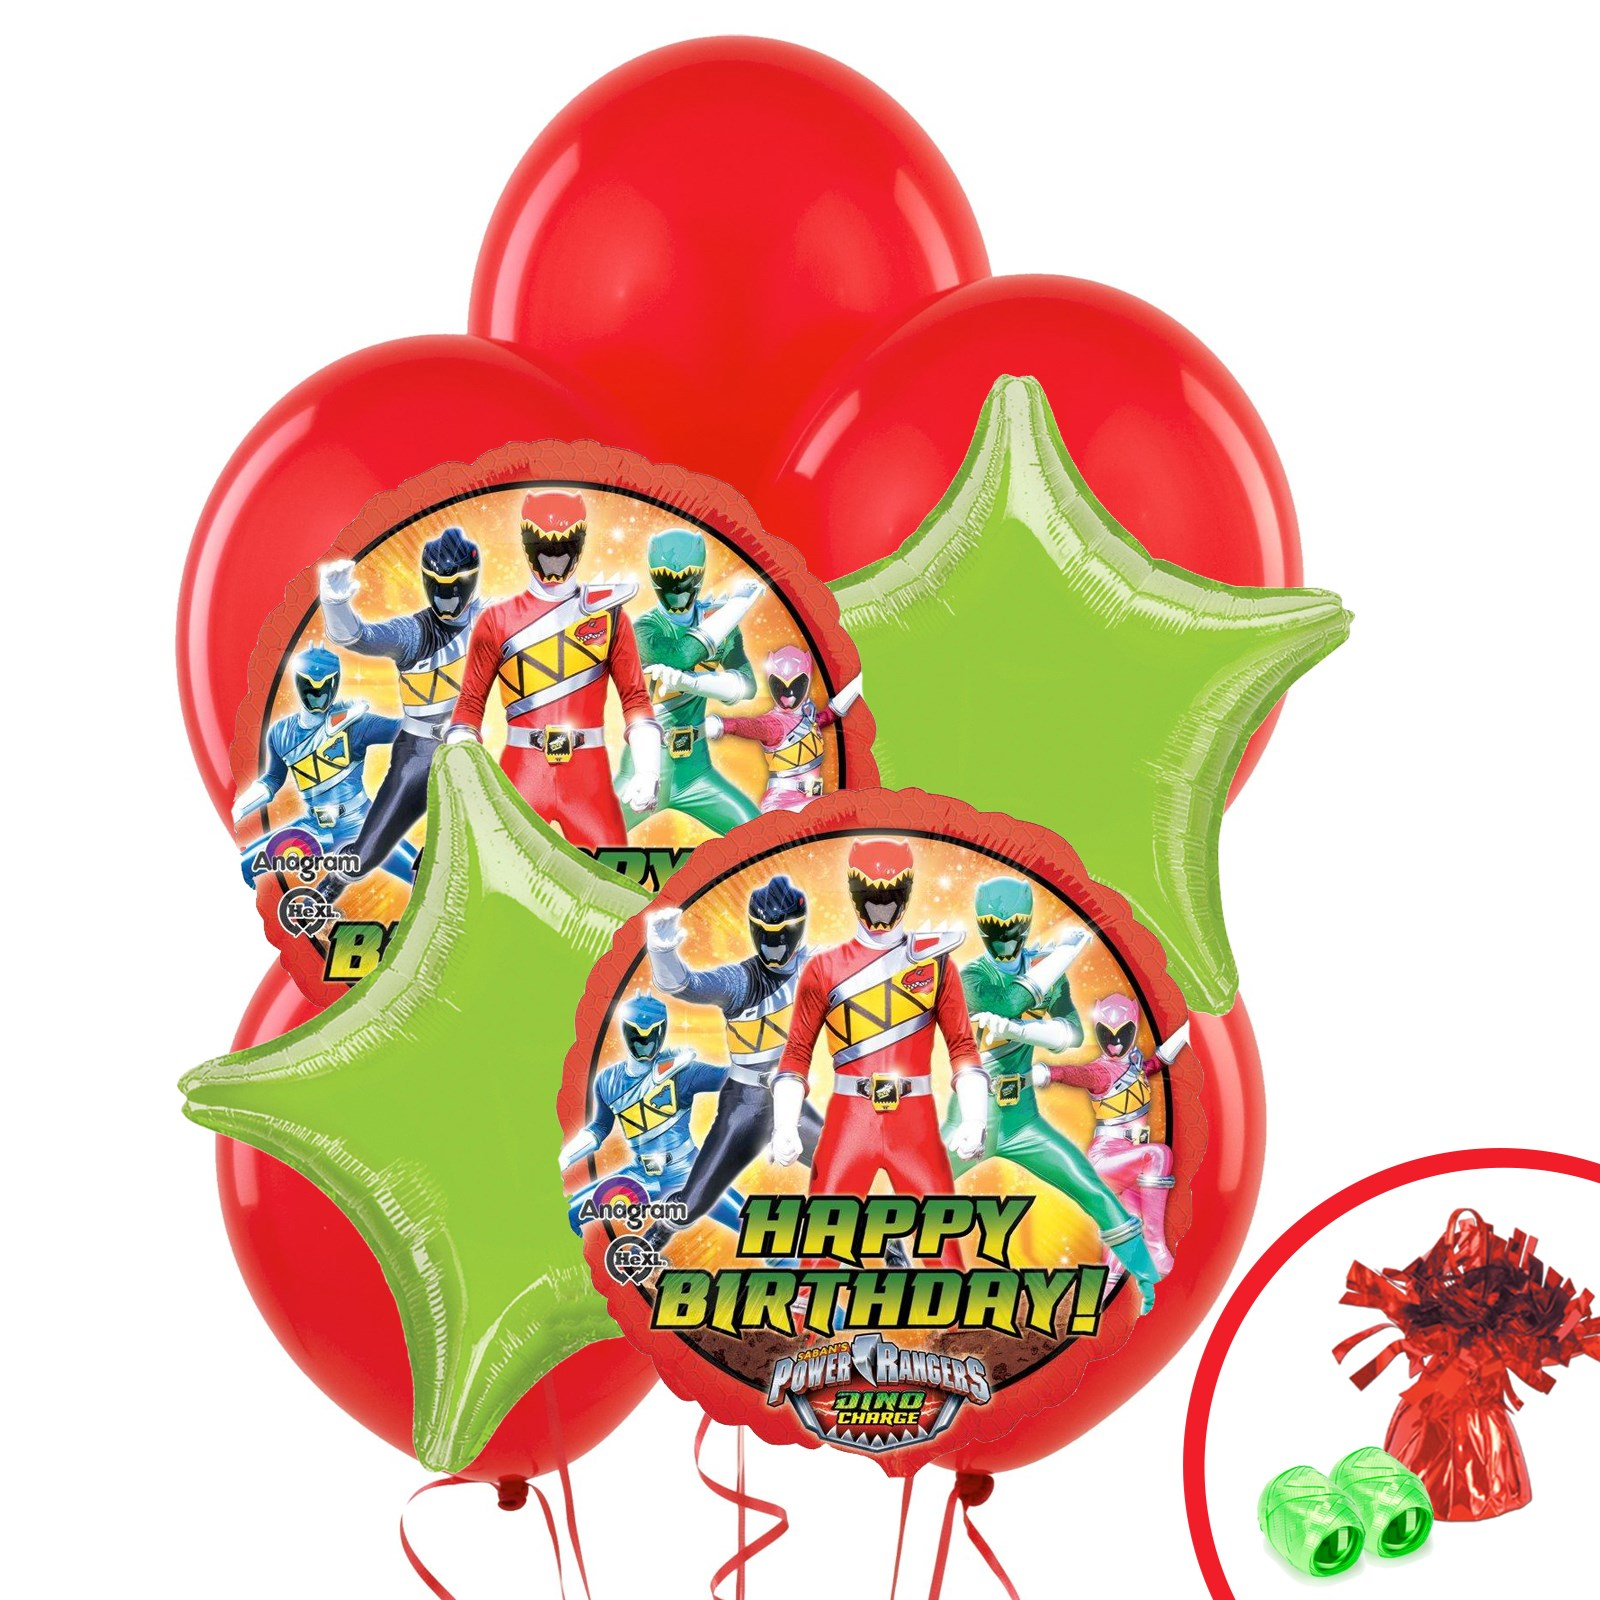 Power Rangers Dino Charge Balloon Bouquet – Power Rangers Party Invitations